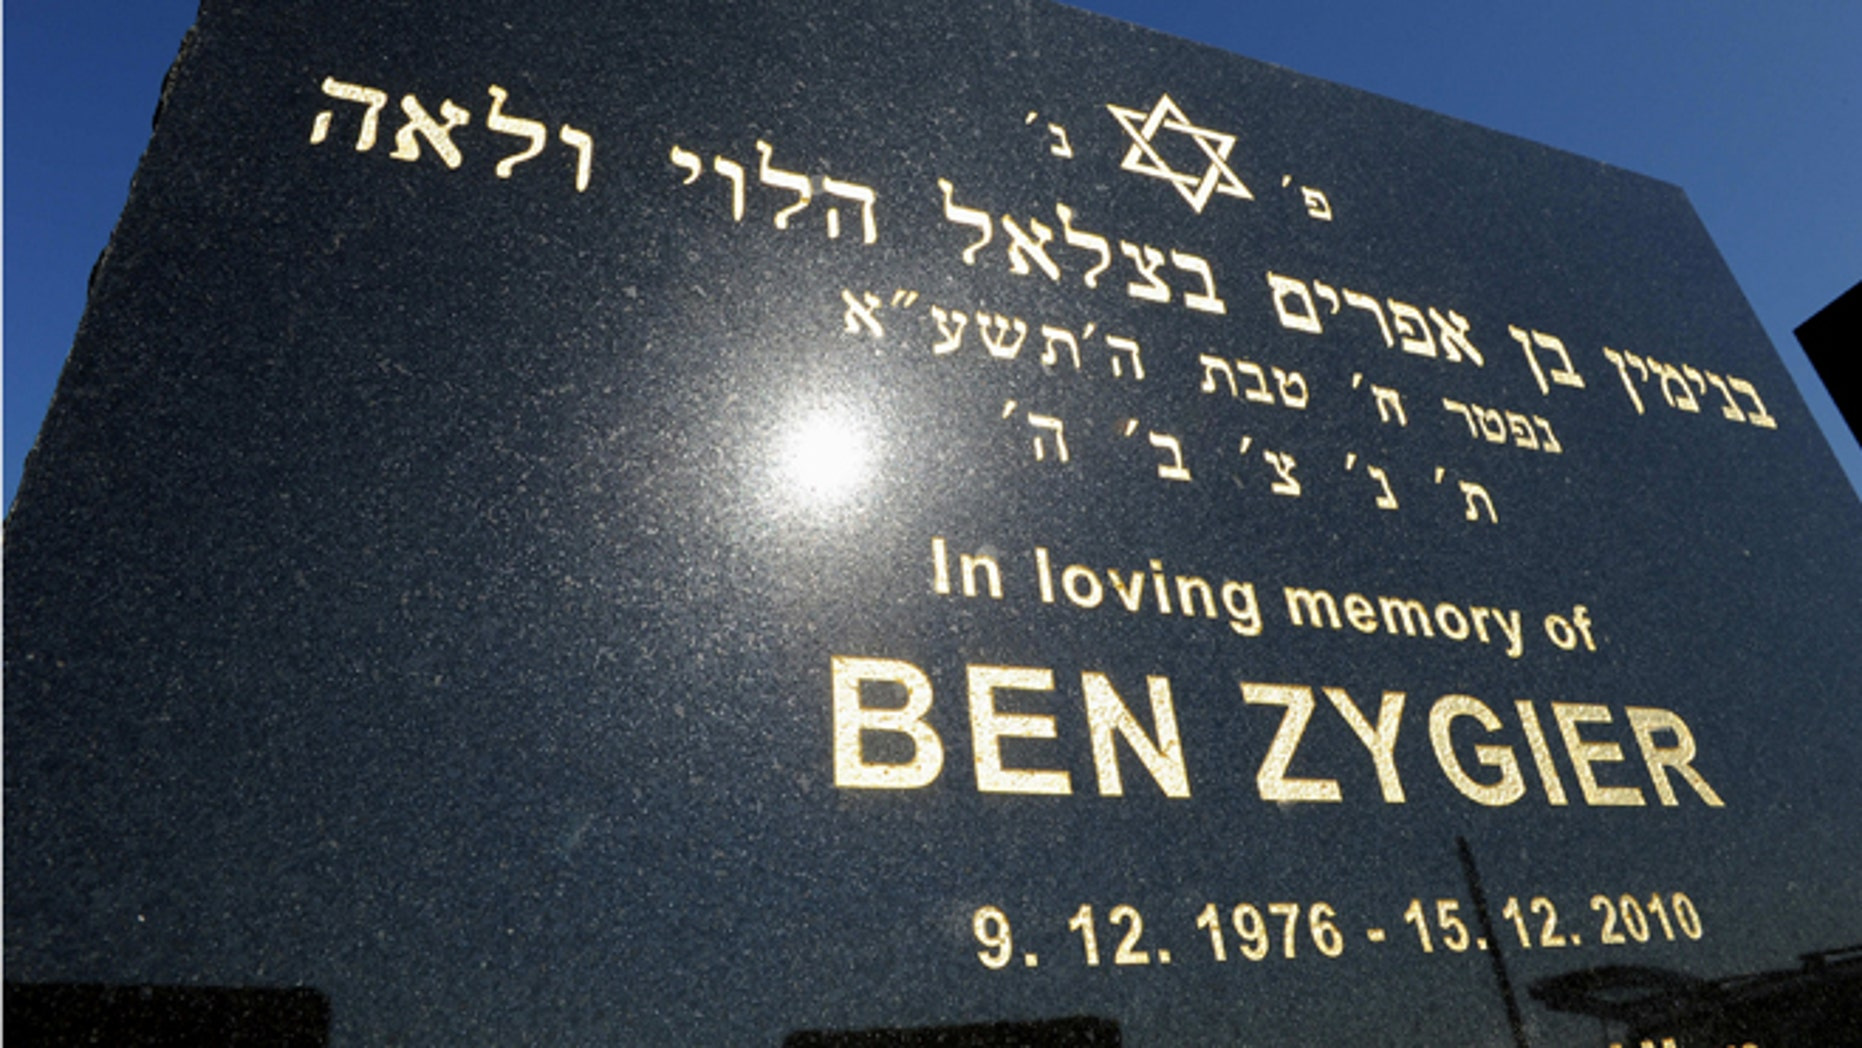 Feb 15. 2013: This file photo shows the tombstone of the man known as Prisoner X, Ben Zygier, at Chevra Kadisha Jewish Cemetery in Melbourne, Australia.